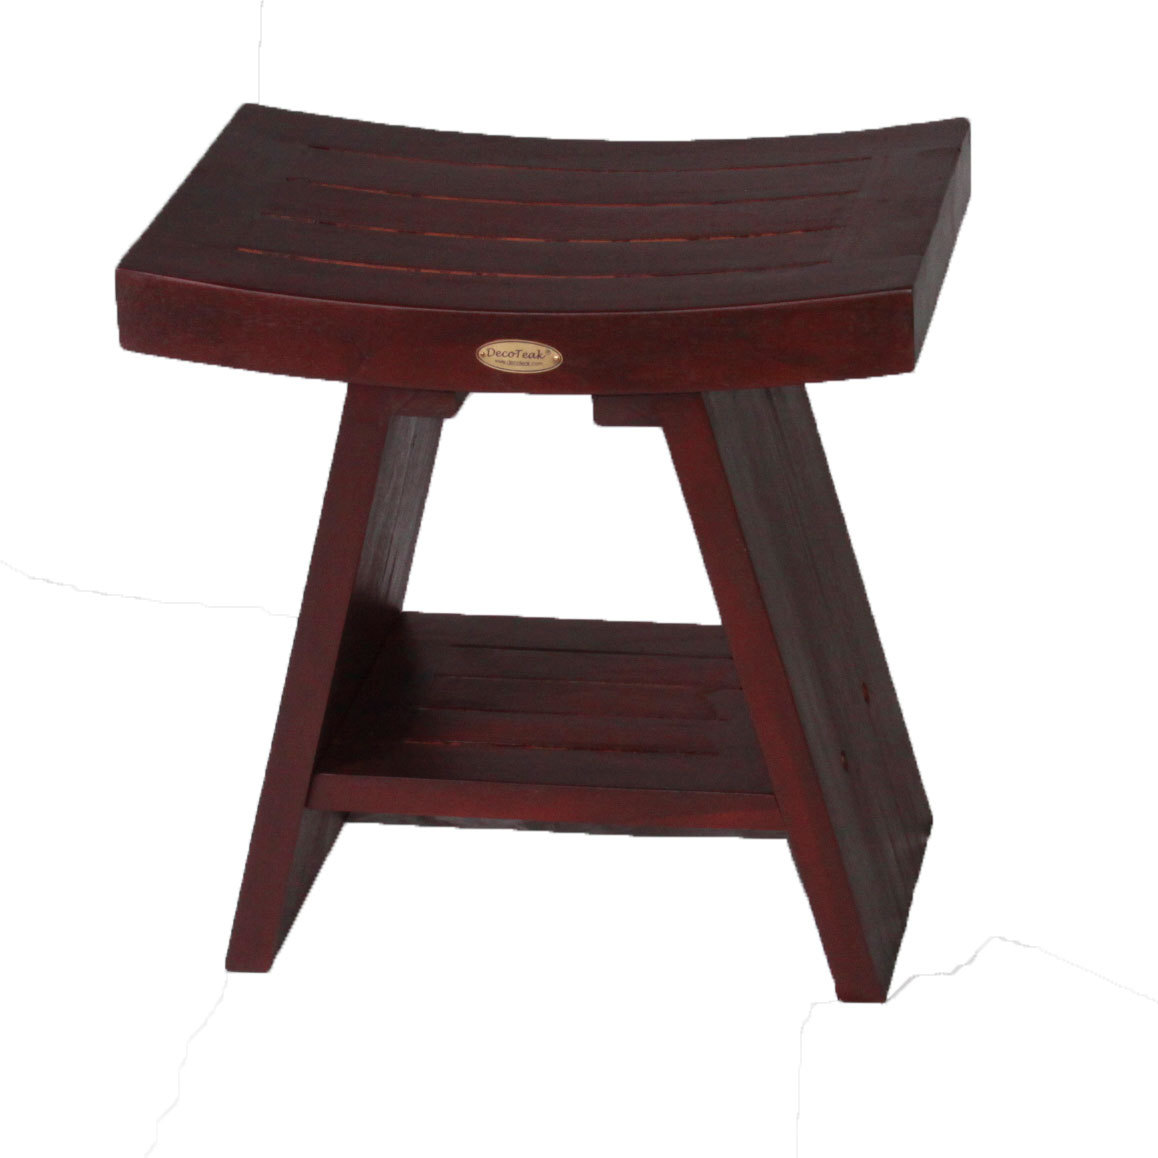 Awesome Decoteak Dt101 Serenity 18 Eastern Style Teak Shower Bench Gmtry Best Dining Table And Chair Ideas Images Gmtryco